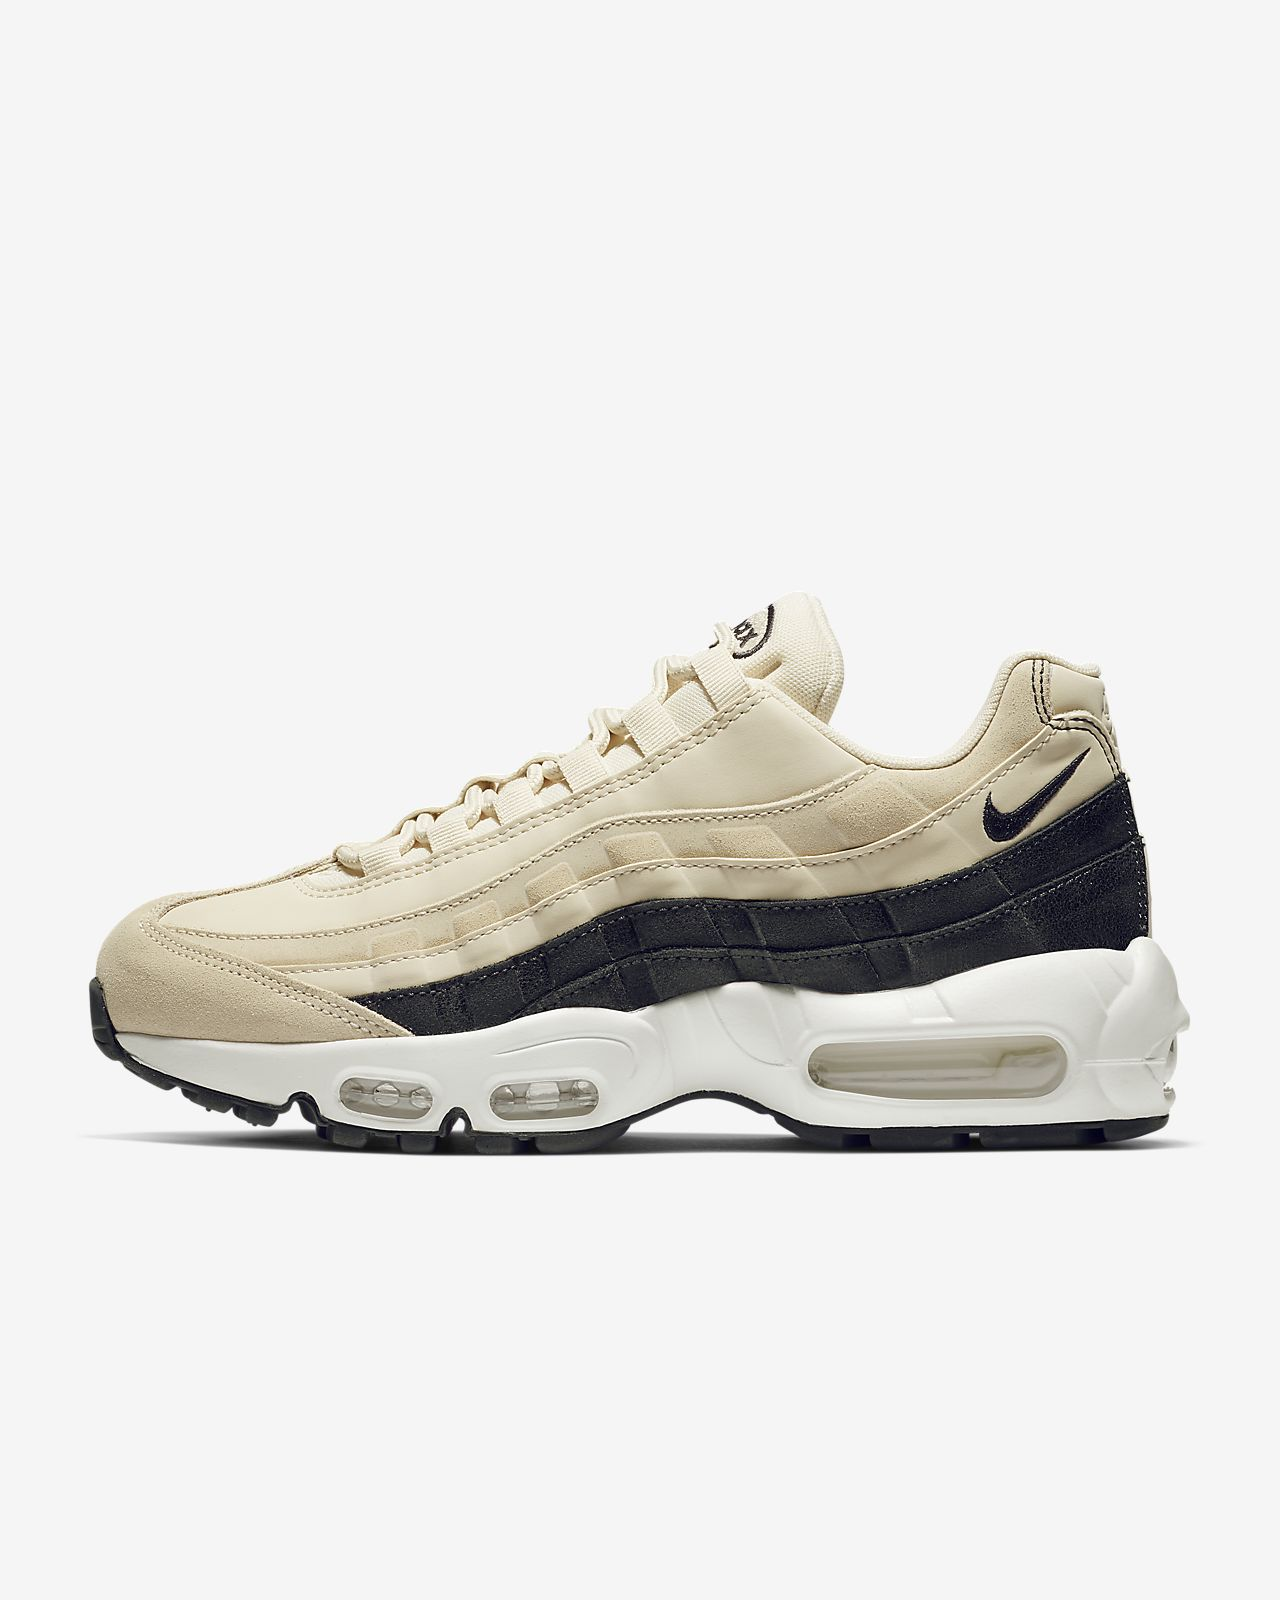 huge discount 16ce1 e70b7 ... Nike Air Max 95 Premium Women s Shoe